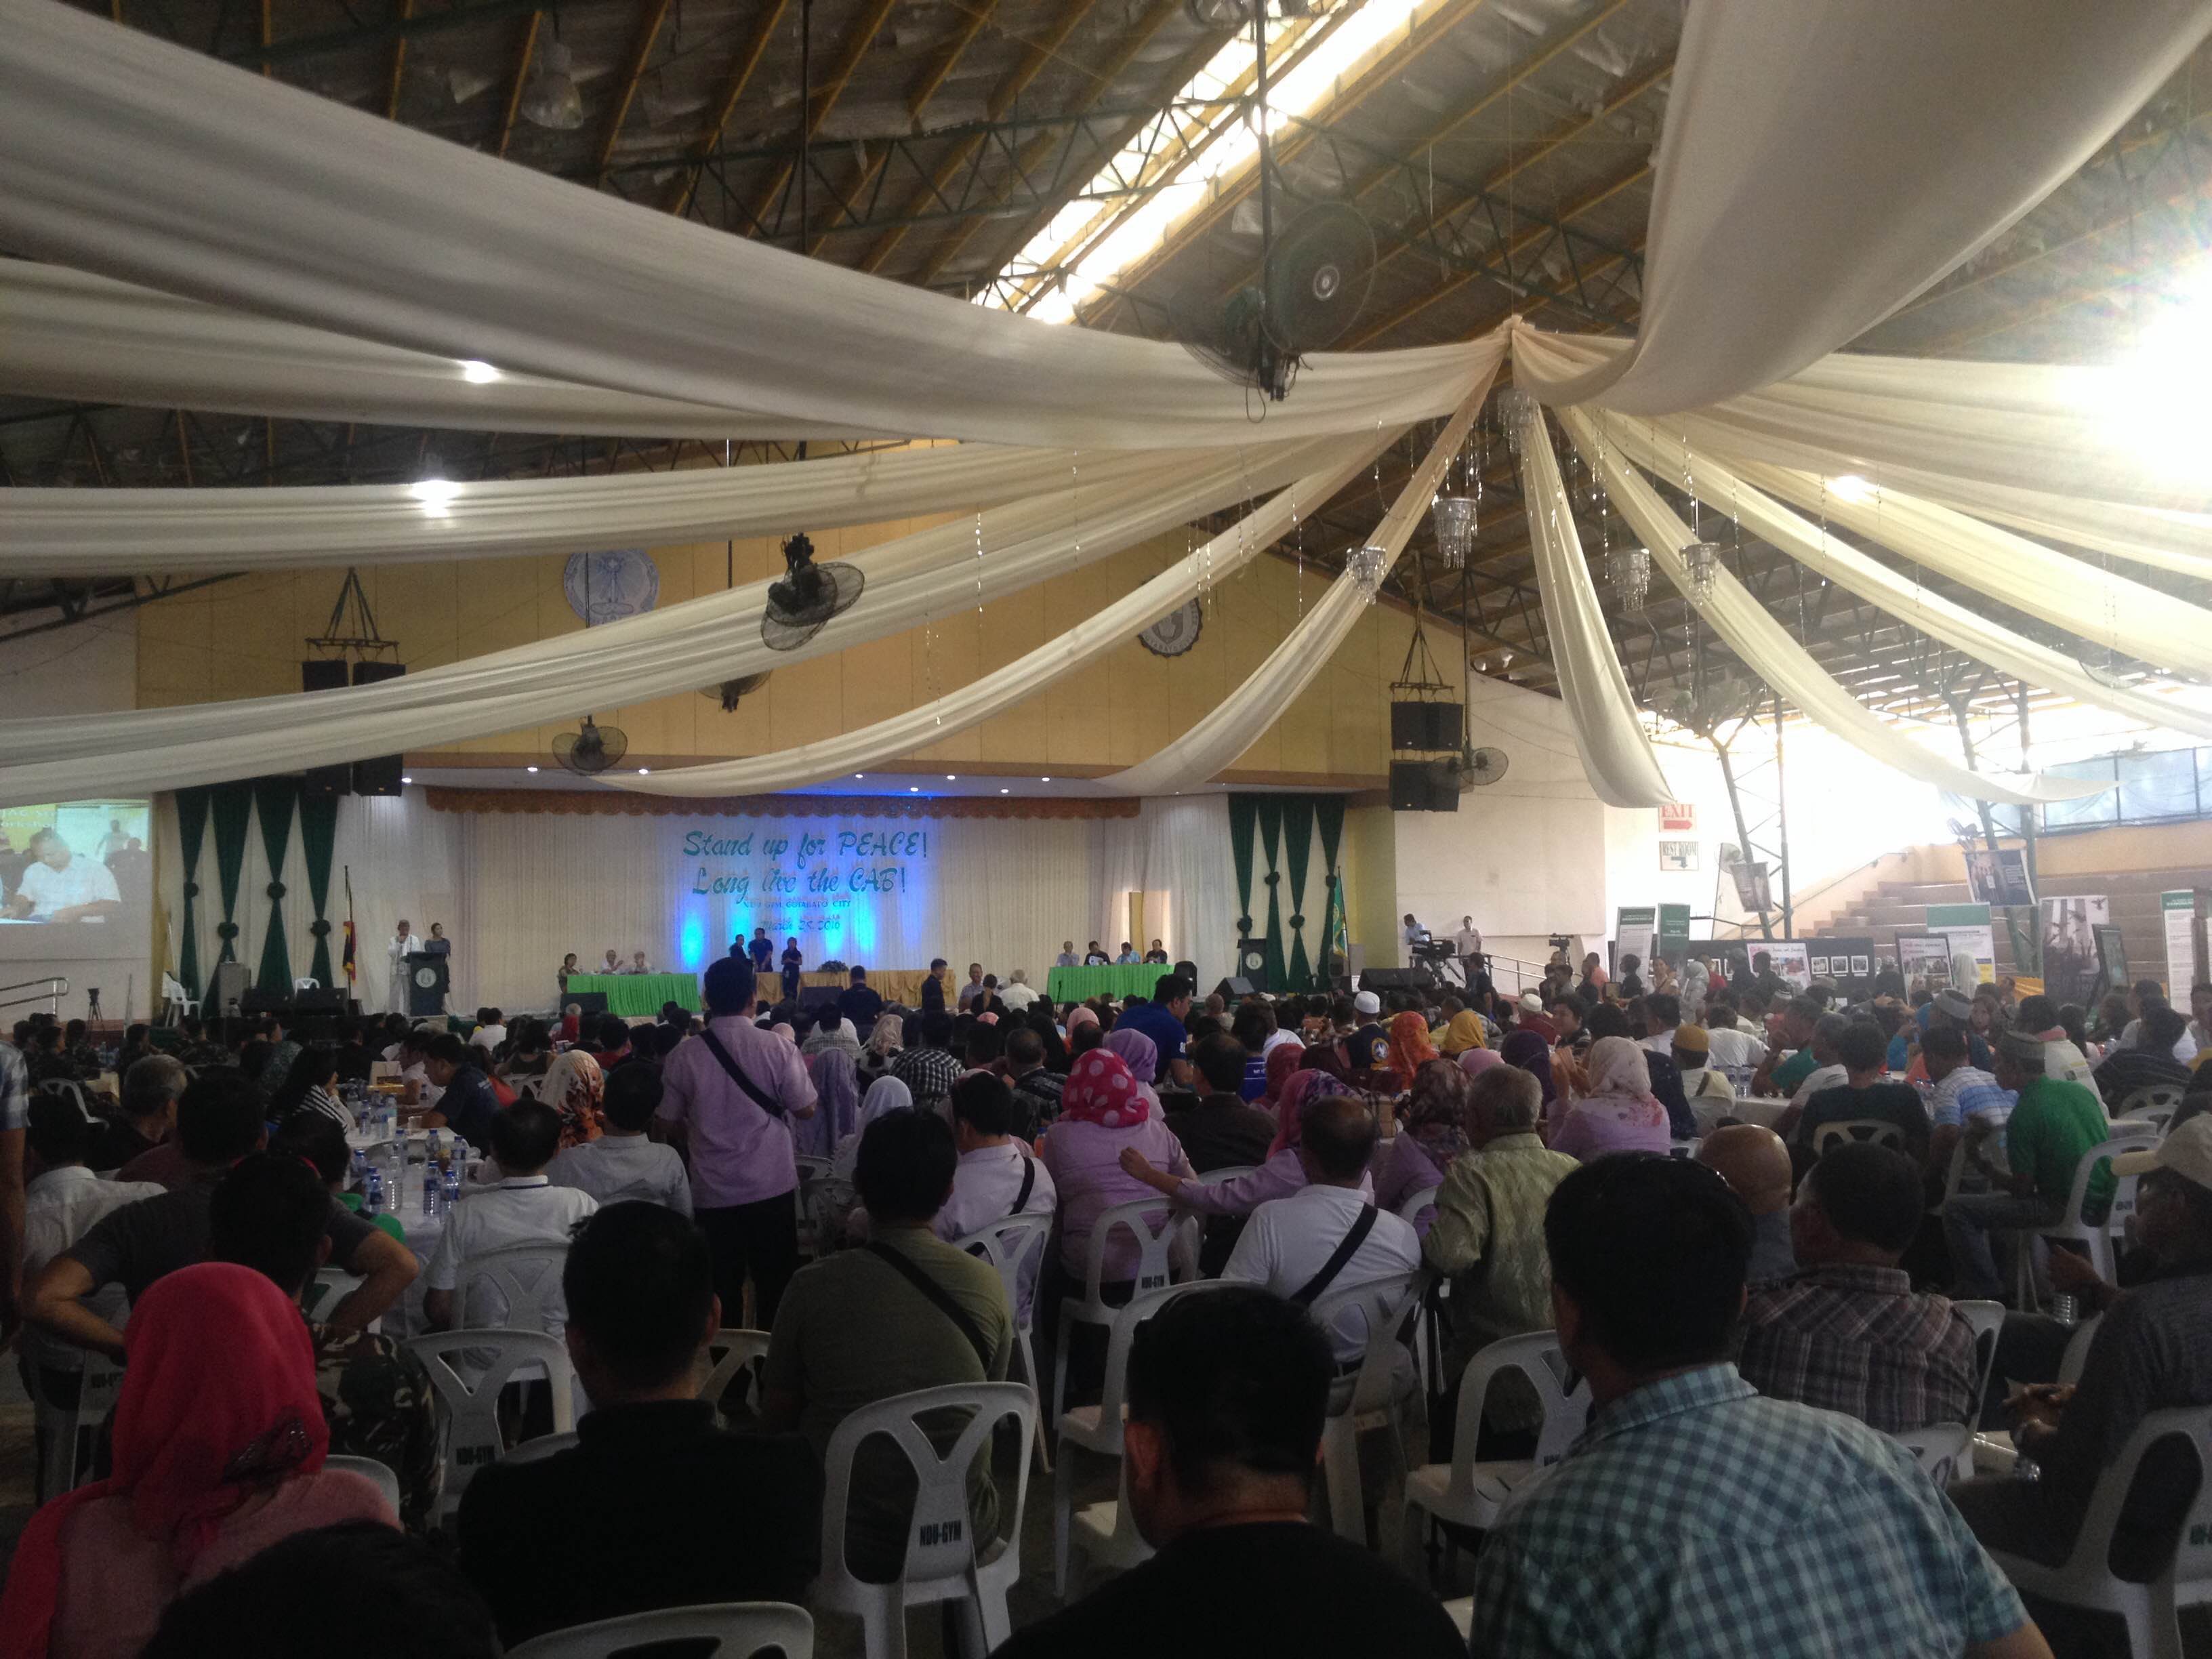 CELEBRATING PEACE. Various groups attend the 2nd anniversary of the signing of the Comprehensive Agreement on the Bangsamoro in Cotabato City. Photo by Jodesz Gavilan/Rappler